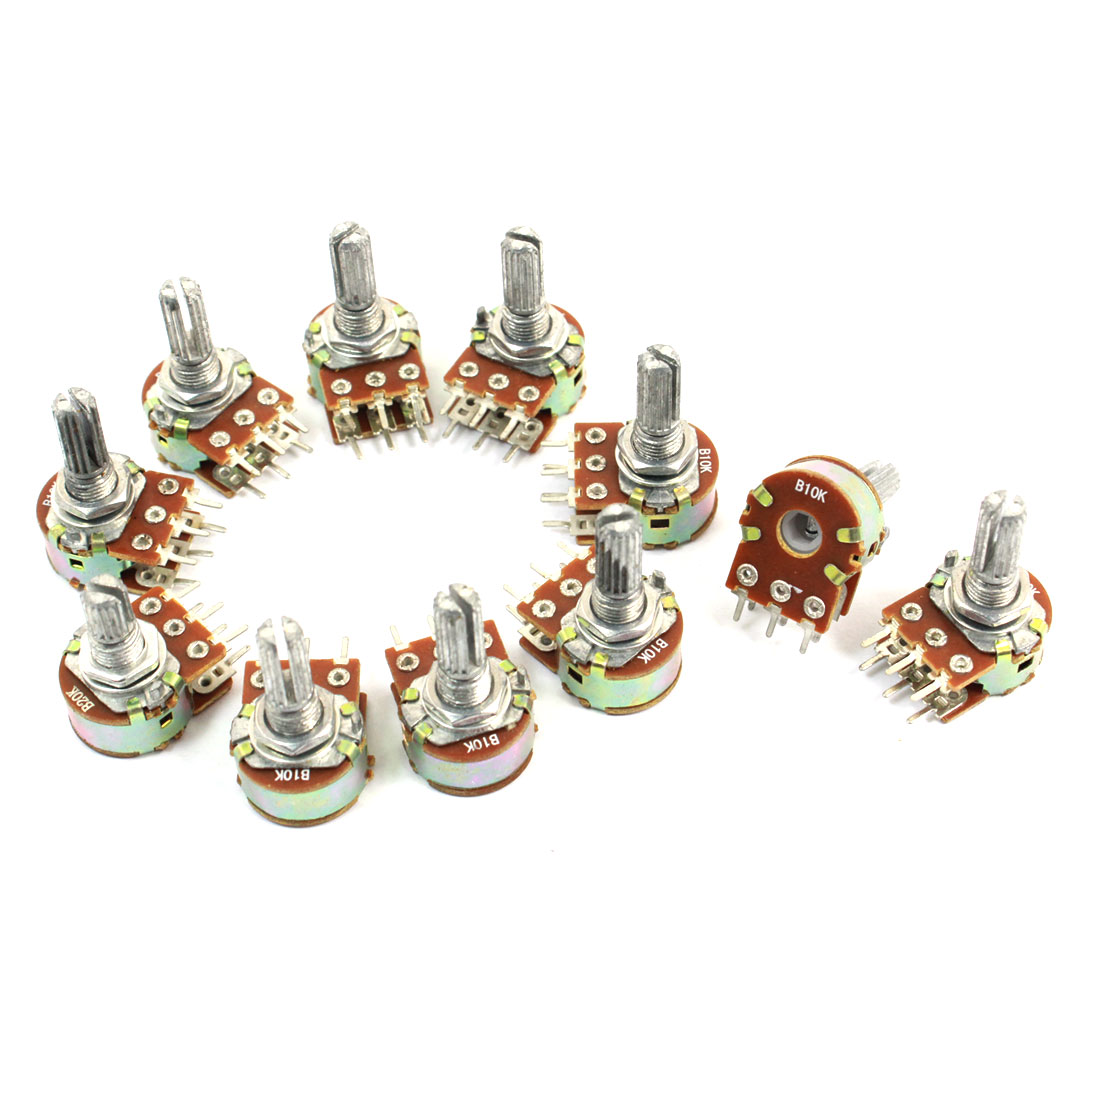 10 Pcs B10K Ohm Knurled Shaft Adjust Double Linear Potentiometers AC 250V